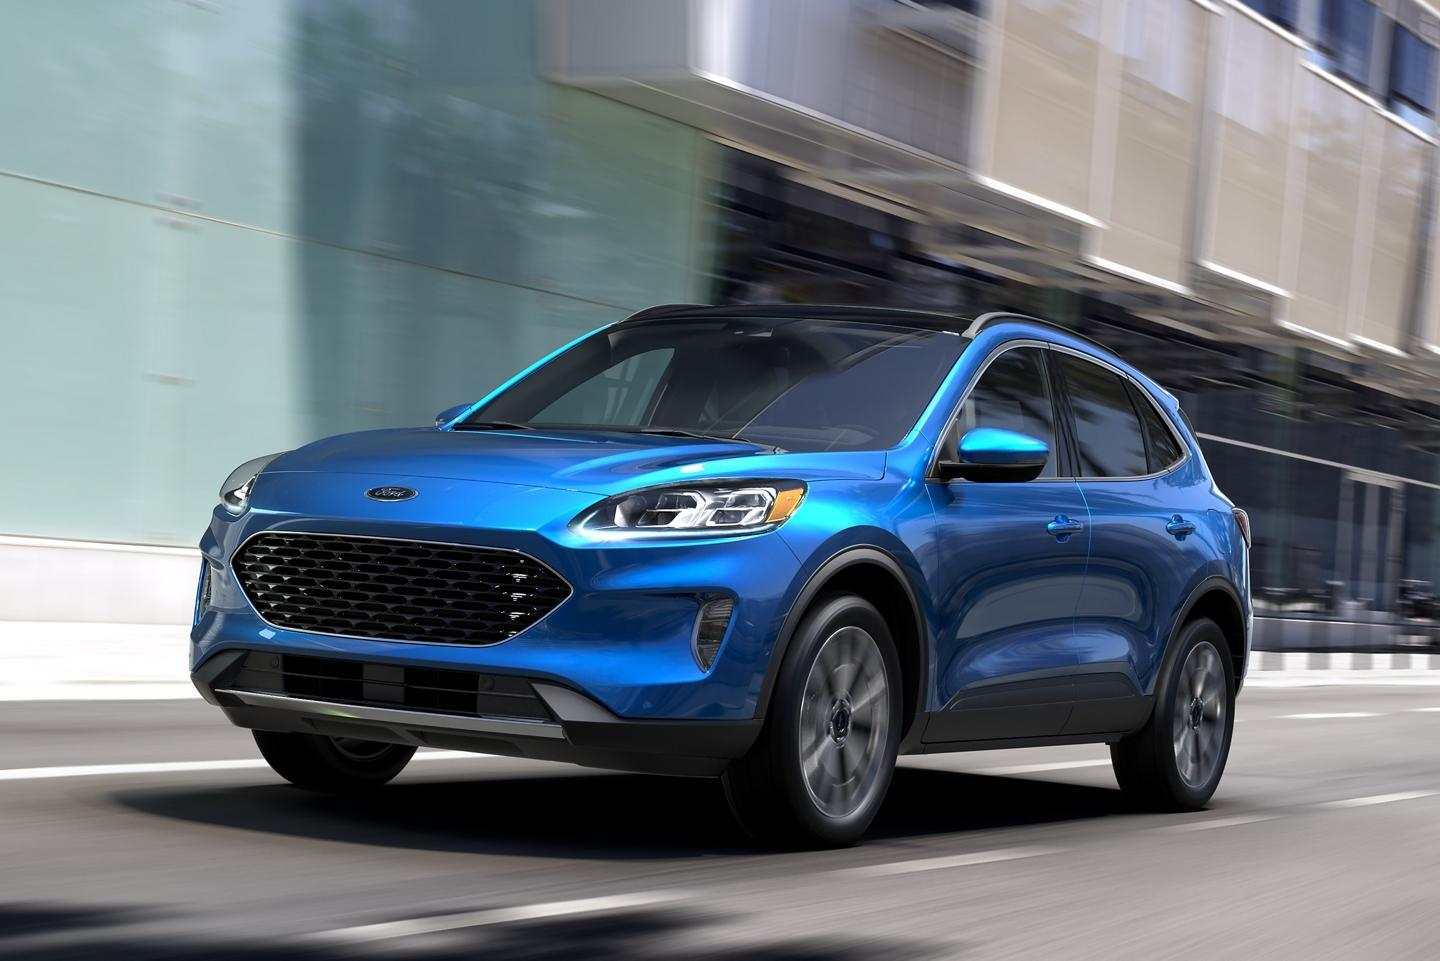 Ford & Lincoln All-New 2020 Escape Belanger Ford image